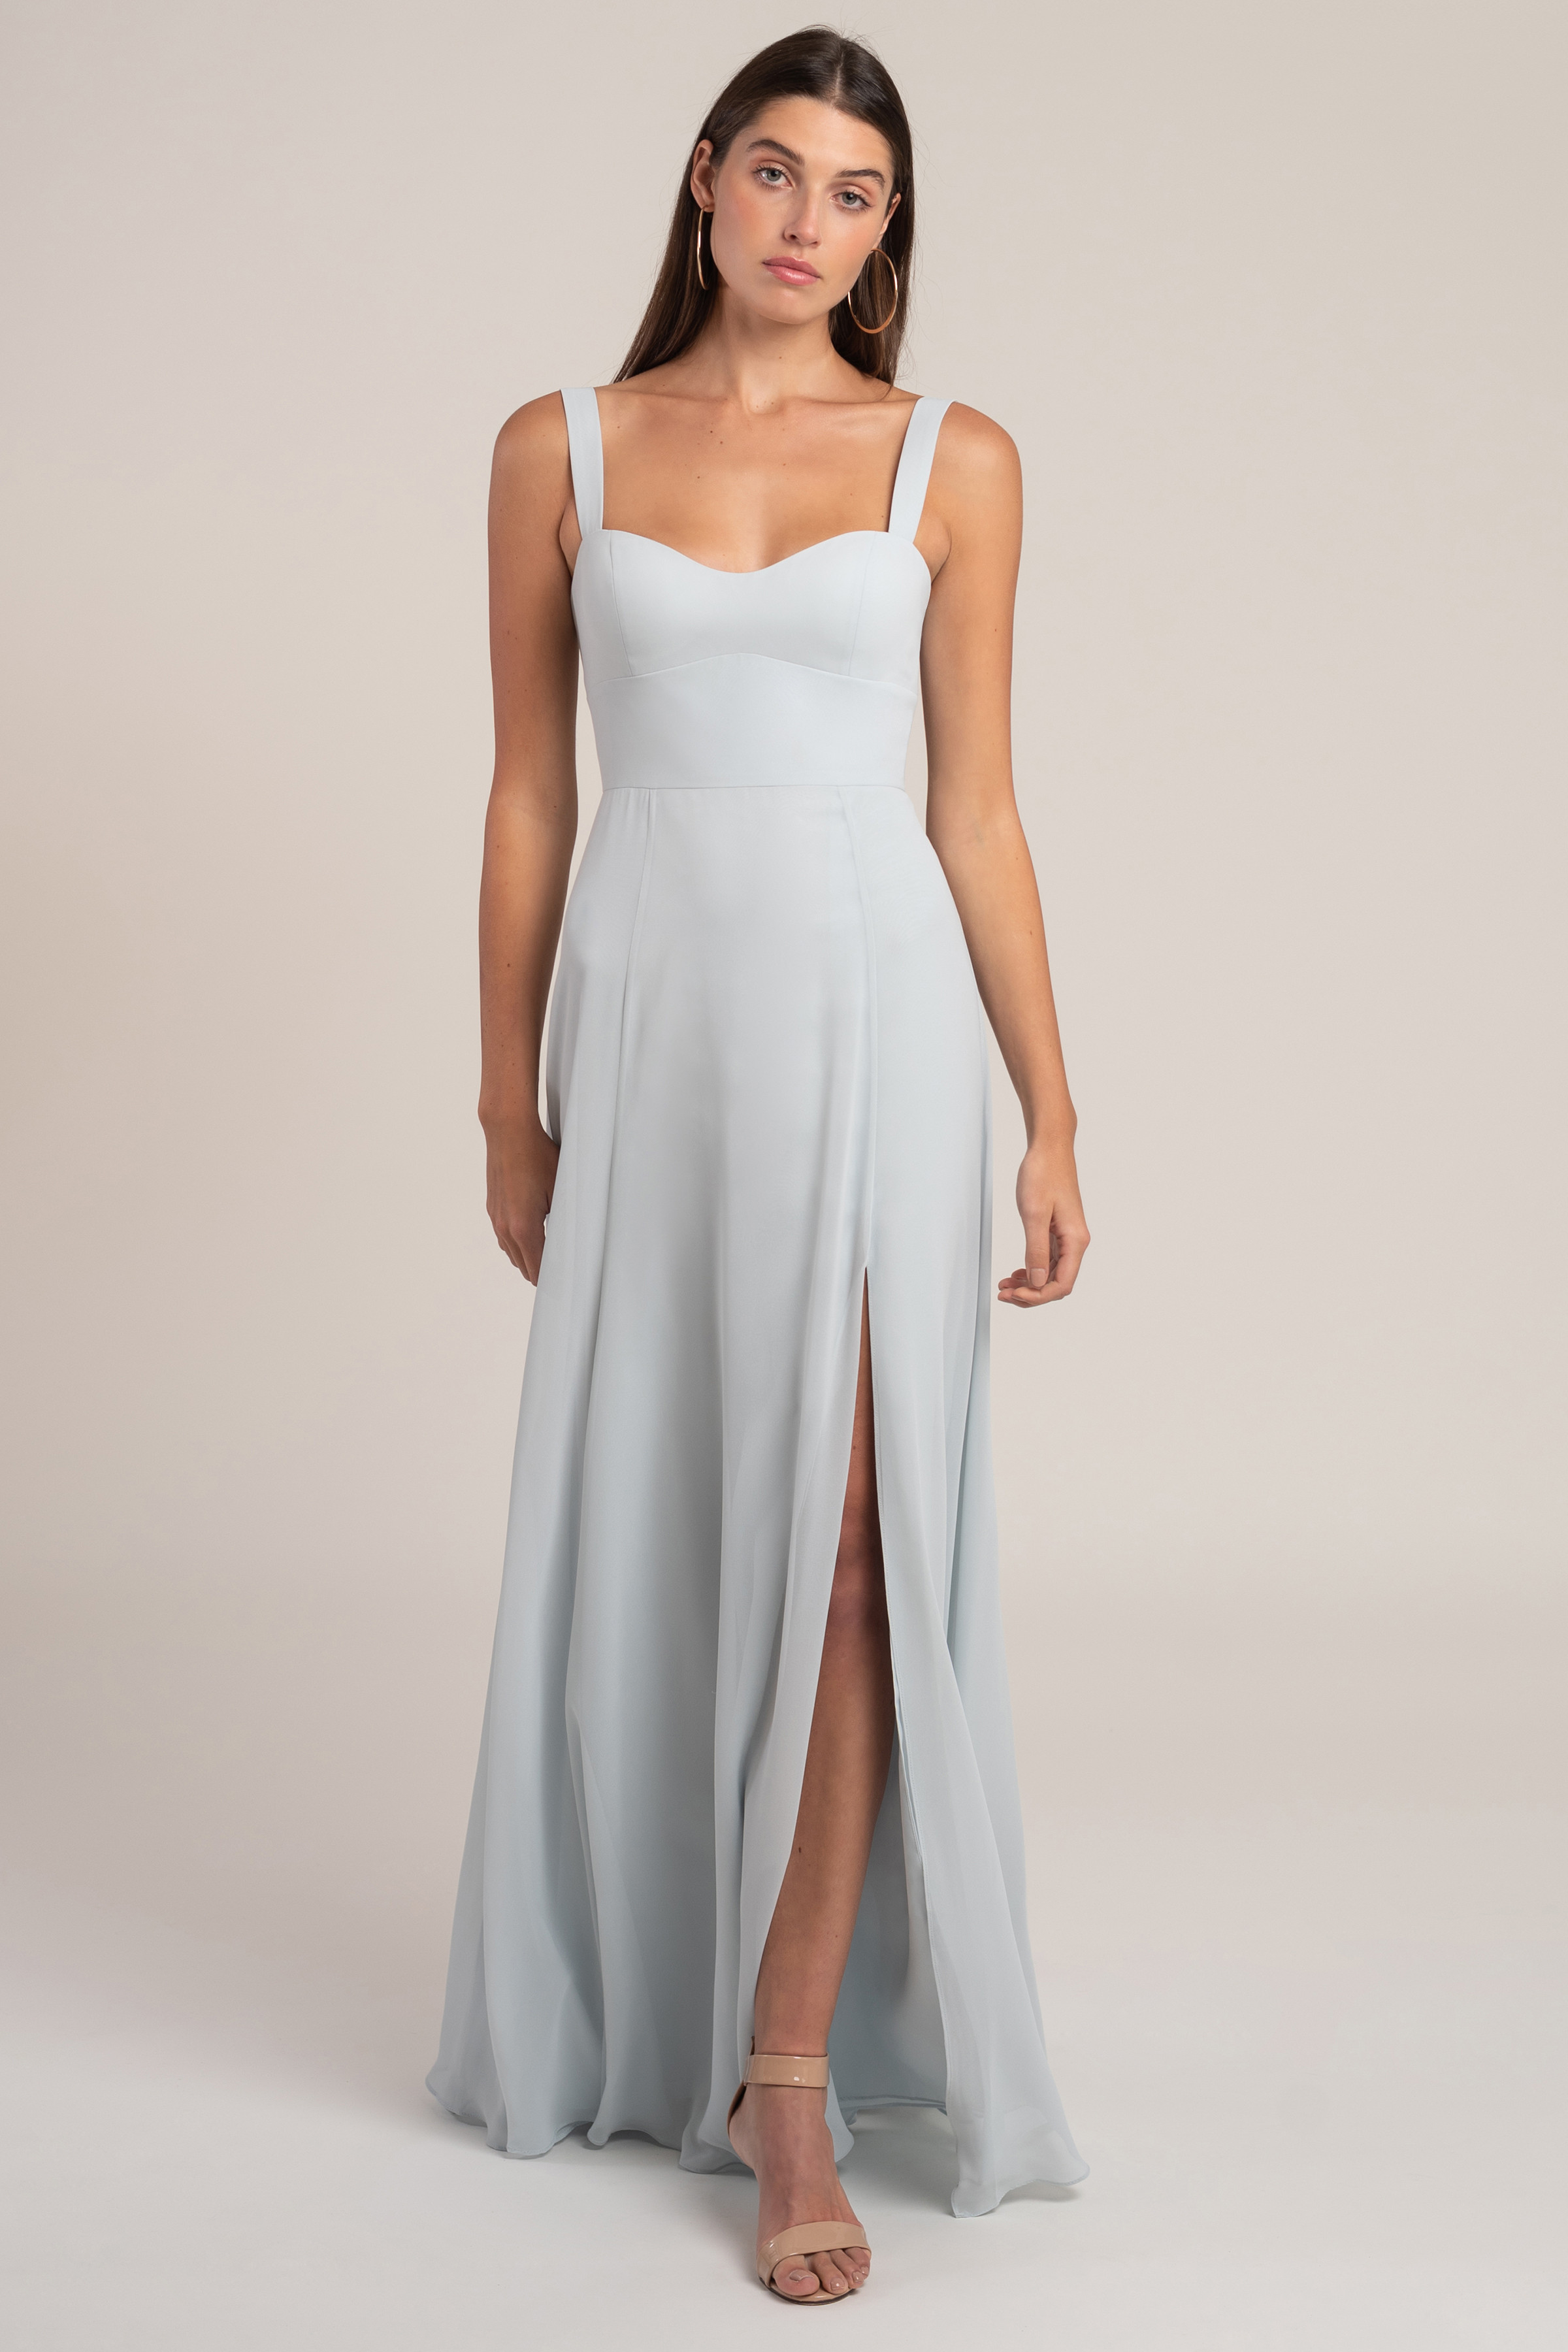 The Harris chiffon bridesmaid dress takes a modern approach to a classic bombshell neckline. The cummerbund detail cinches in your waist, and the flowing chiffon skirt is cut slim through the hips for a beautifully flattering silhouette. With her wide set straps and clean sweetheart neckline, shes sure to flatter every curve.